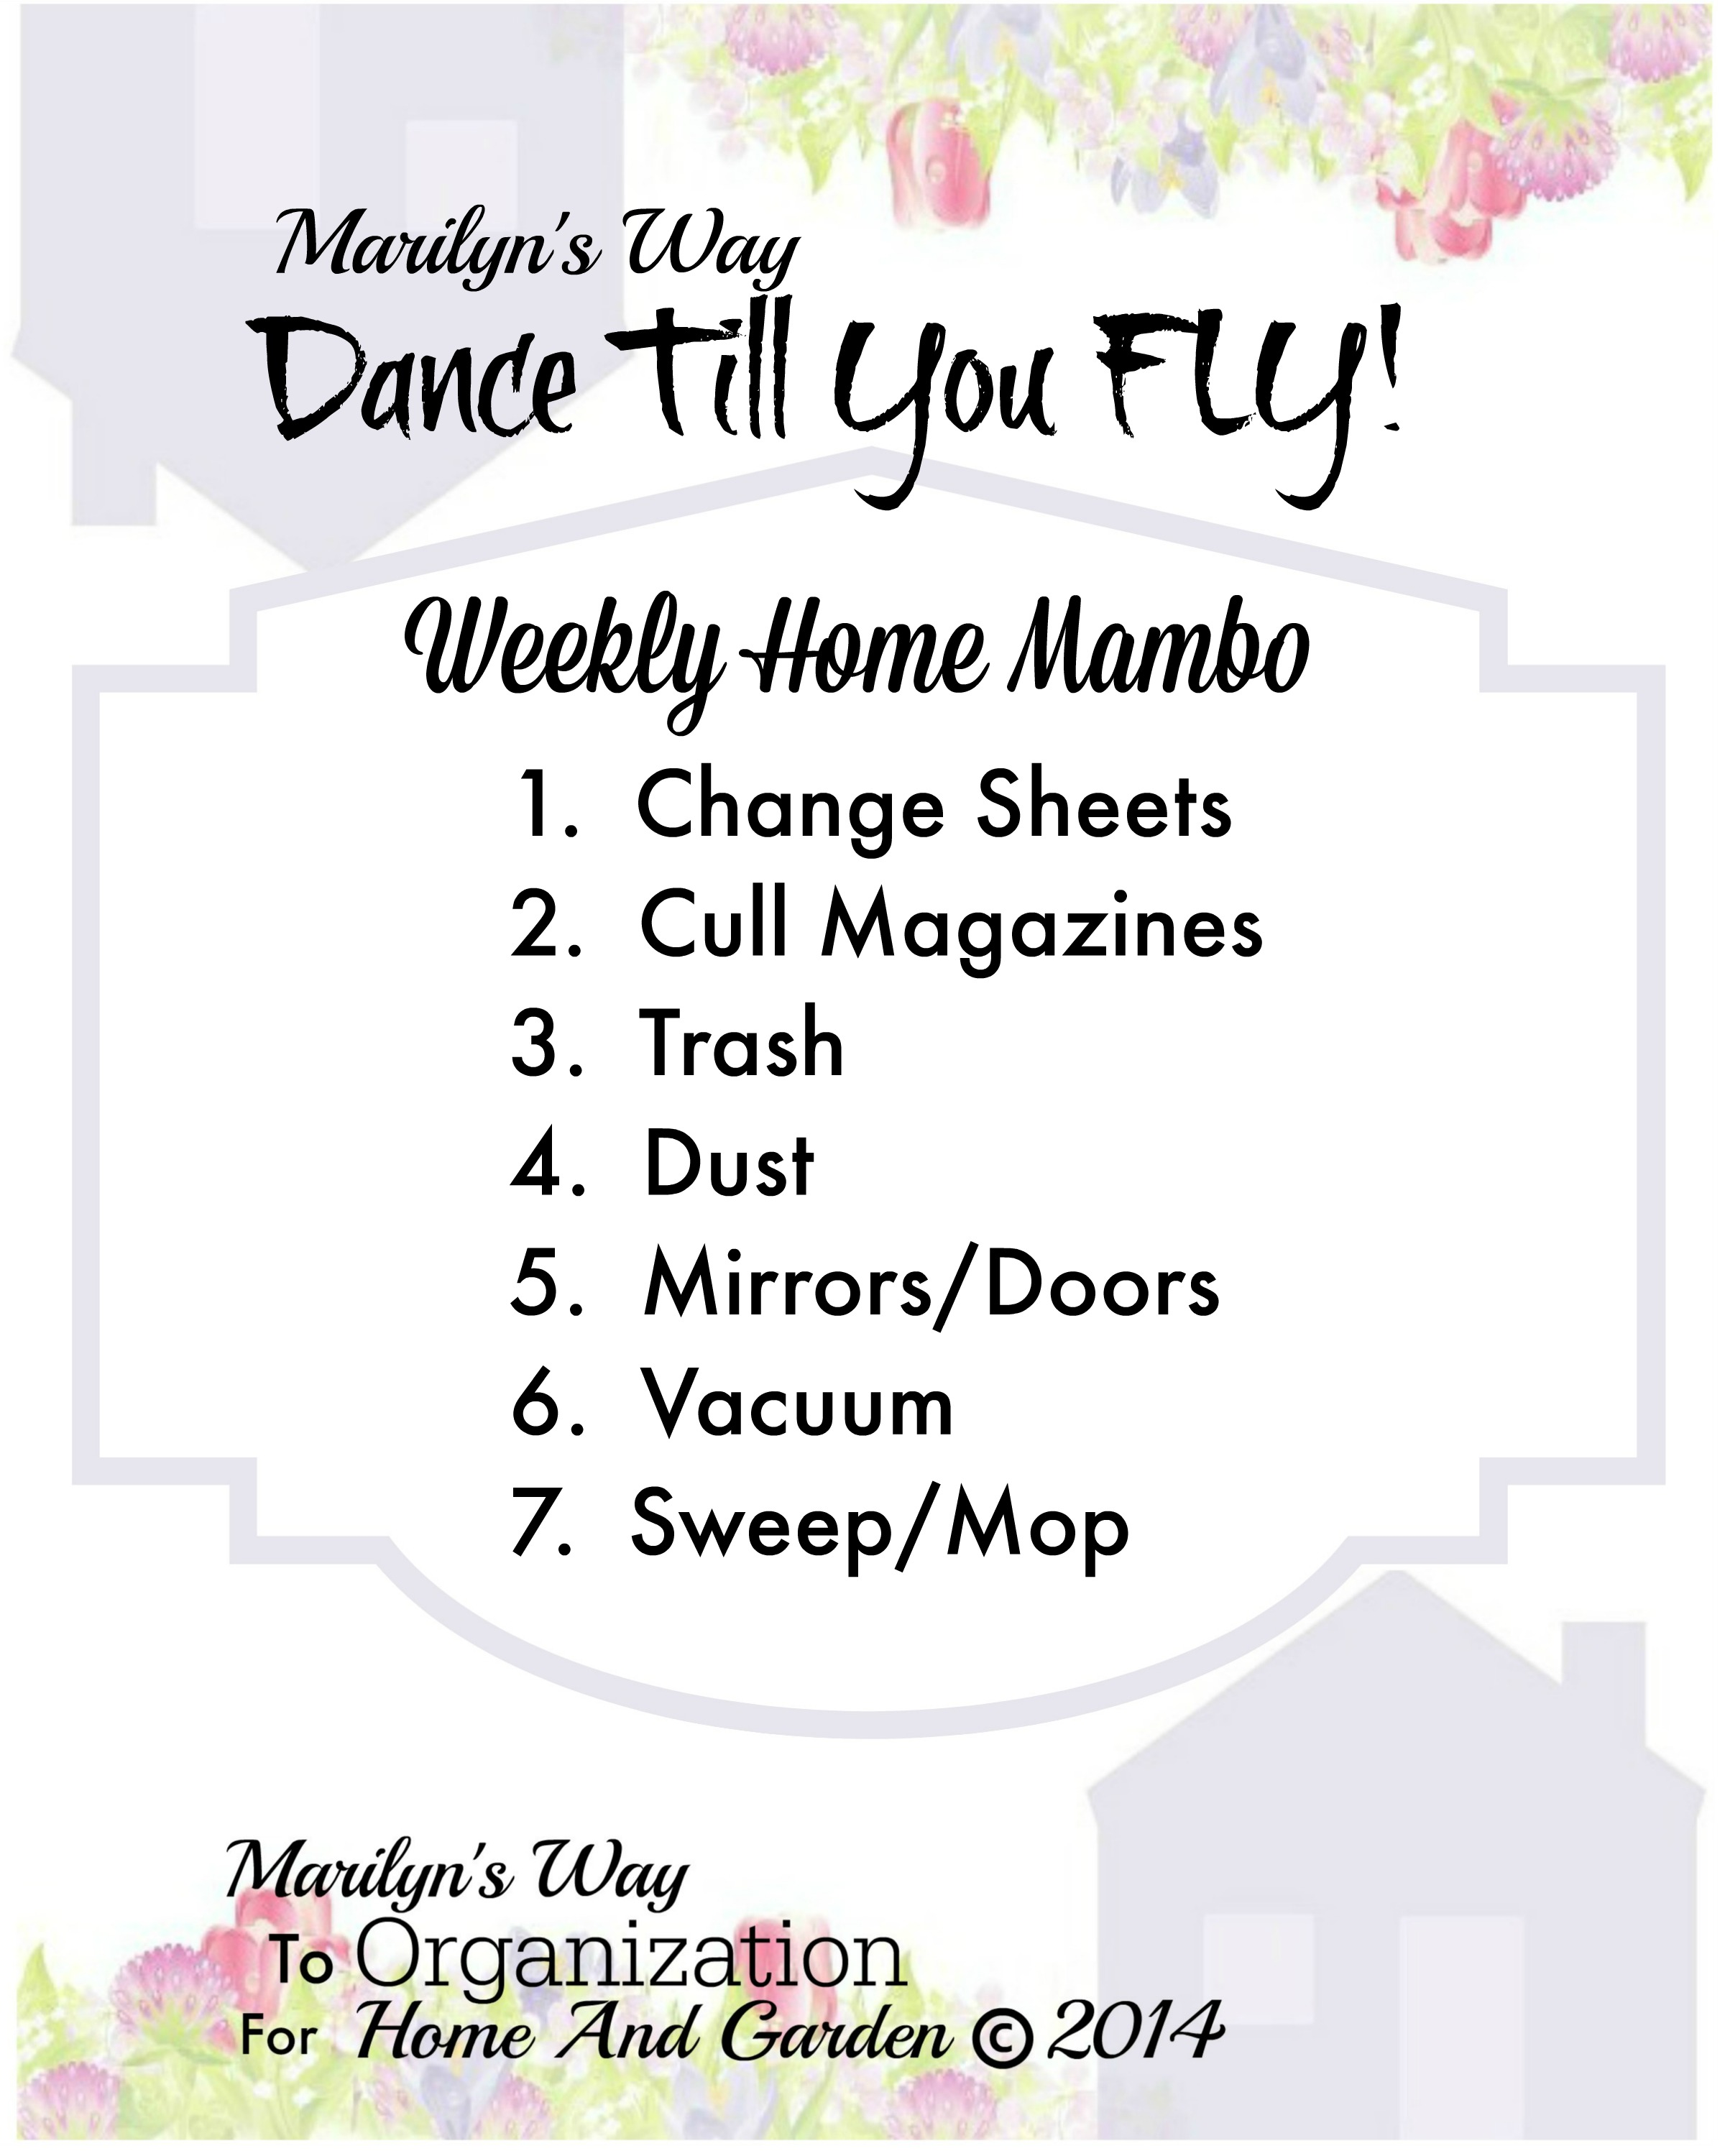 Weekly homemambo14